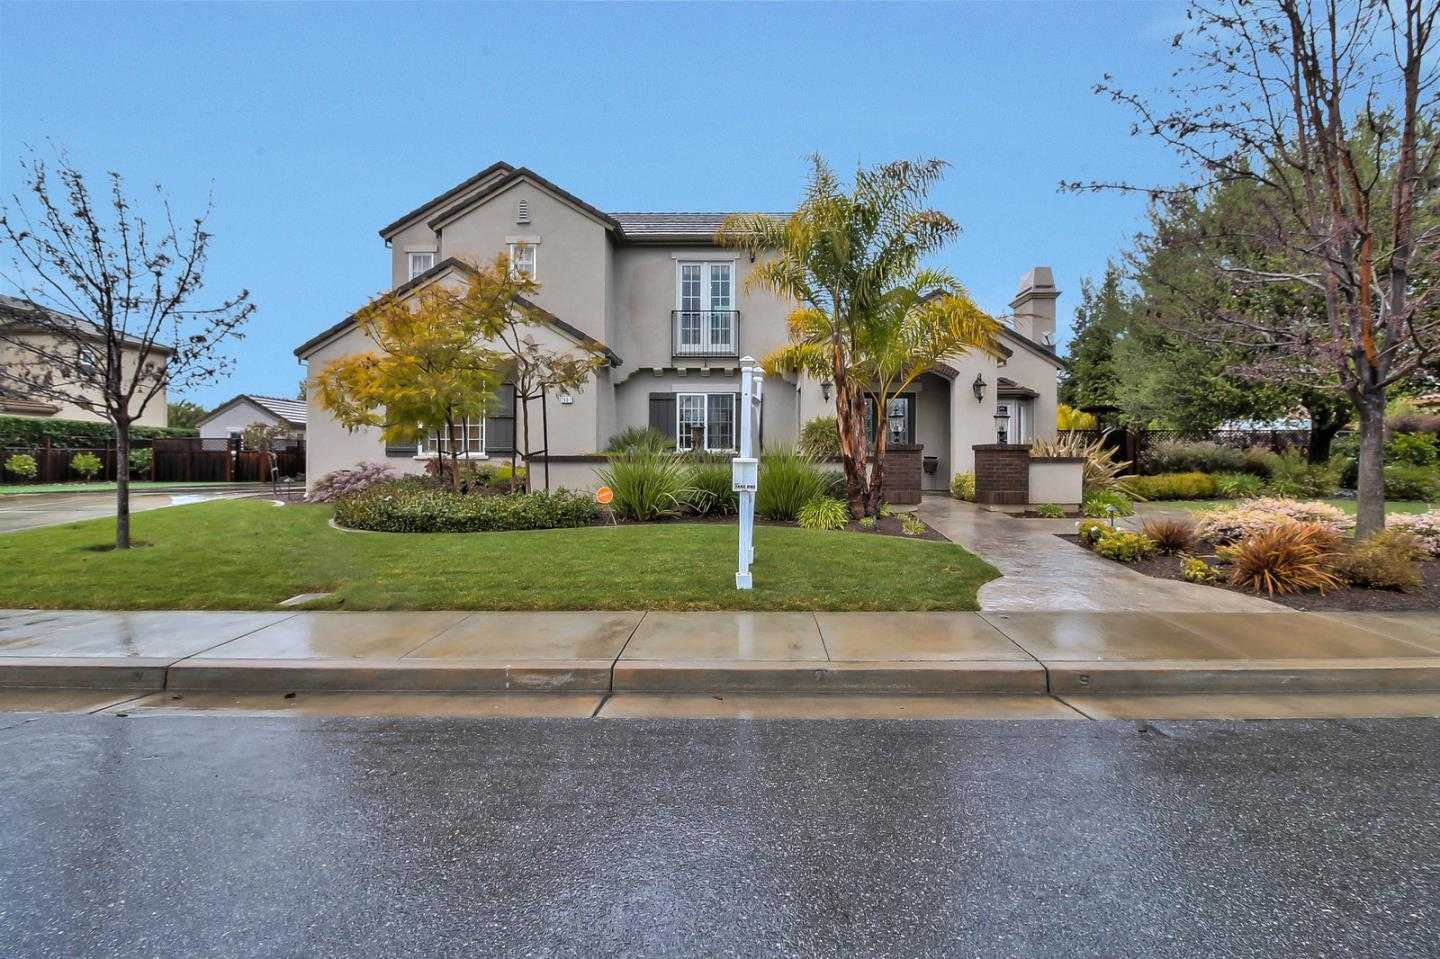 $2,399,000 - 6Br/5Ba -  for Sale in Morgan Hill